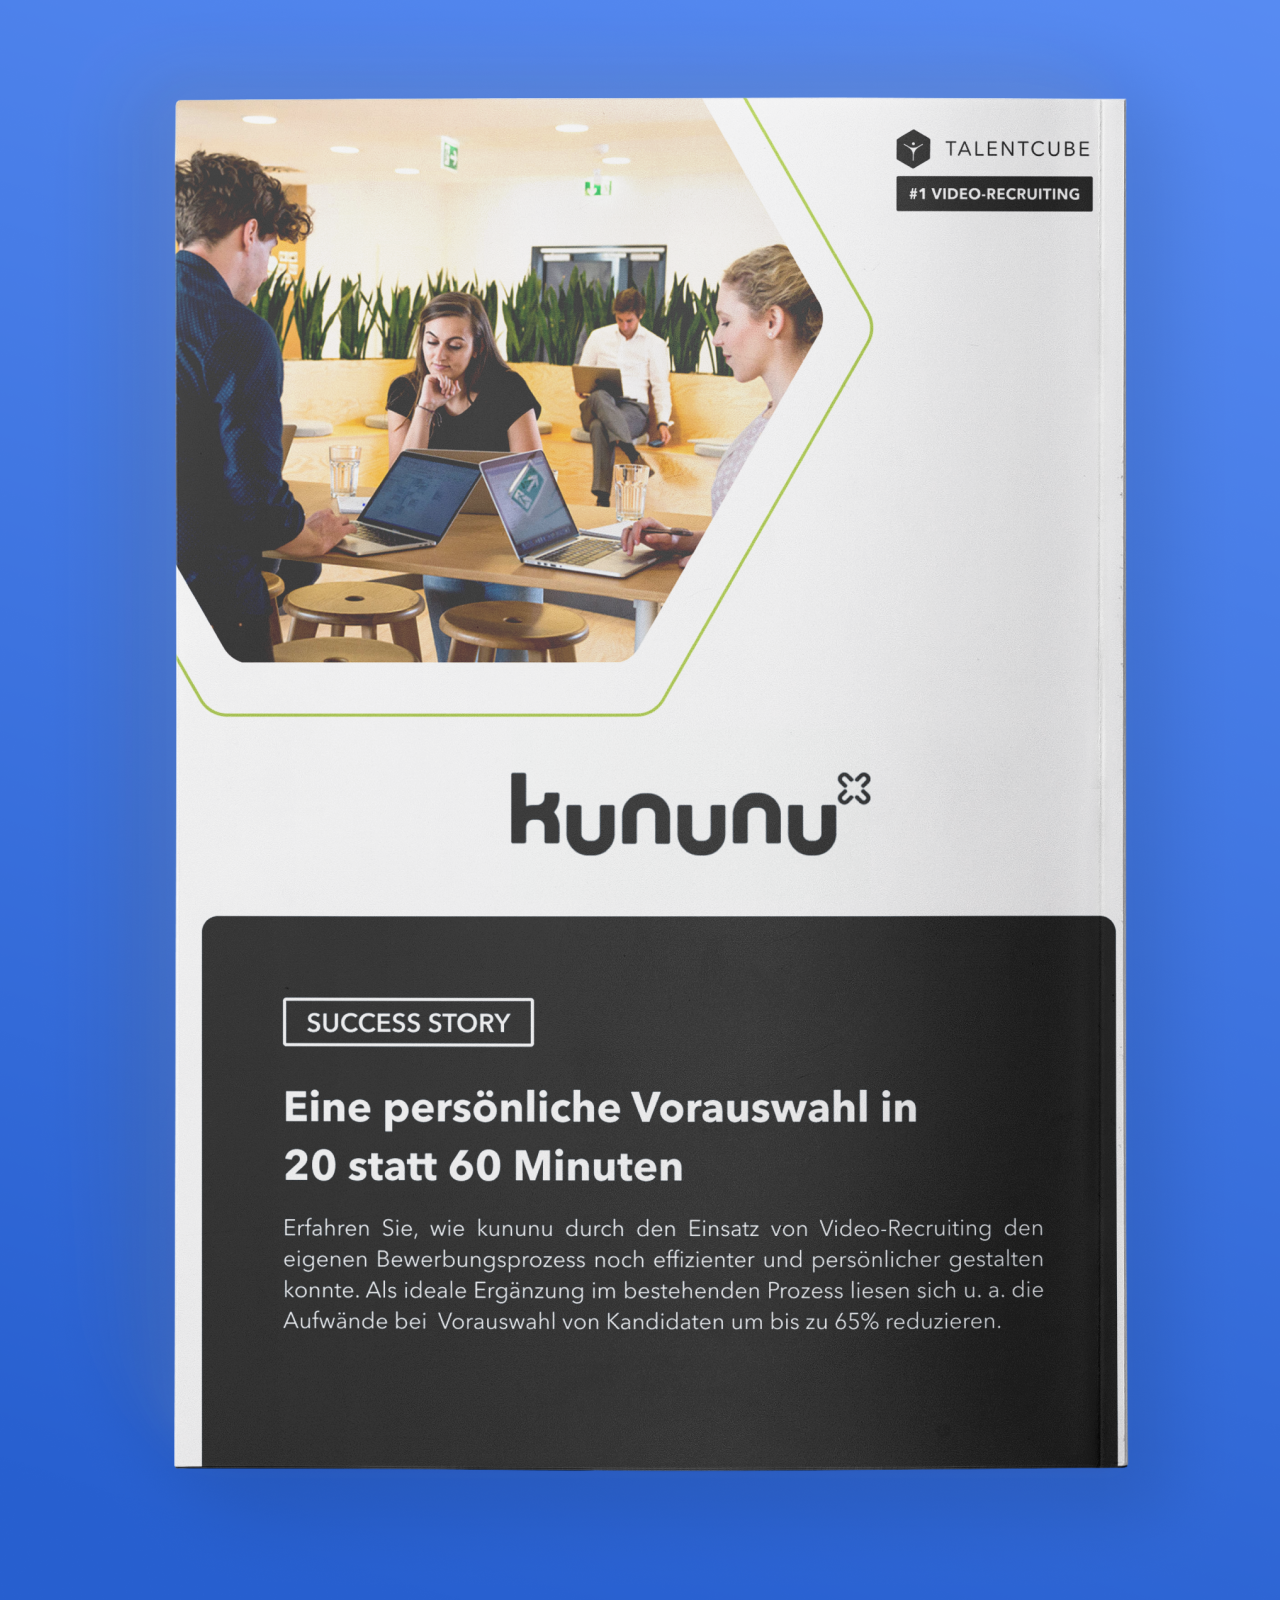 kununu – Pre-screen candidates in 20 instead of 60 minutes